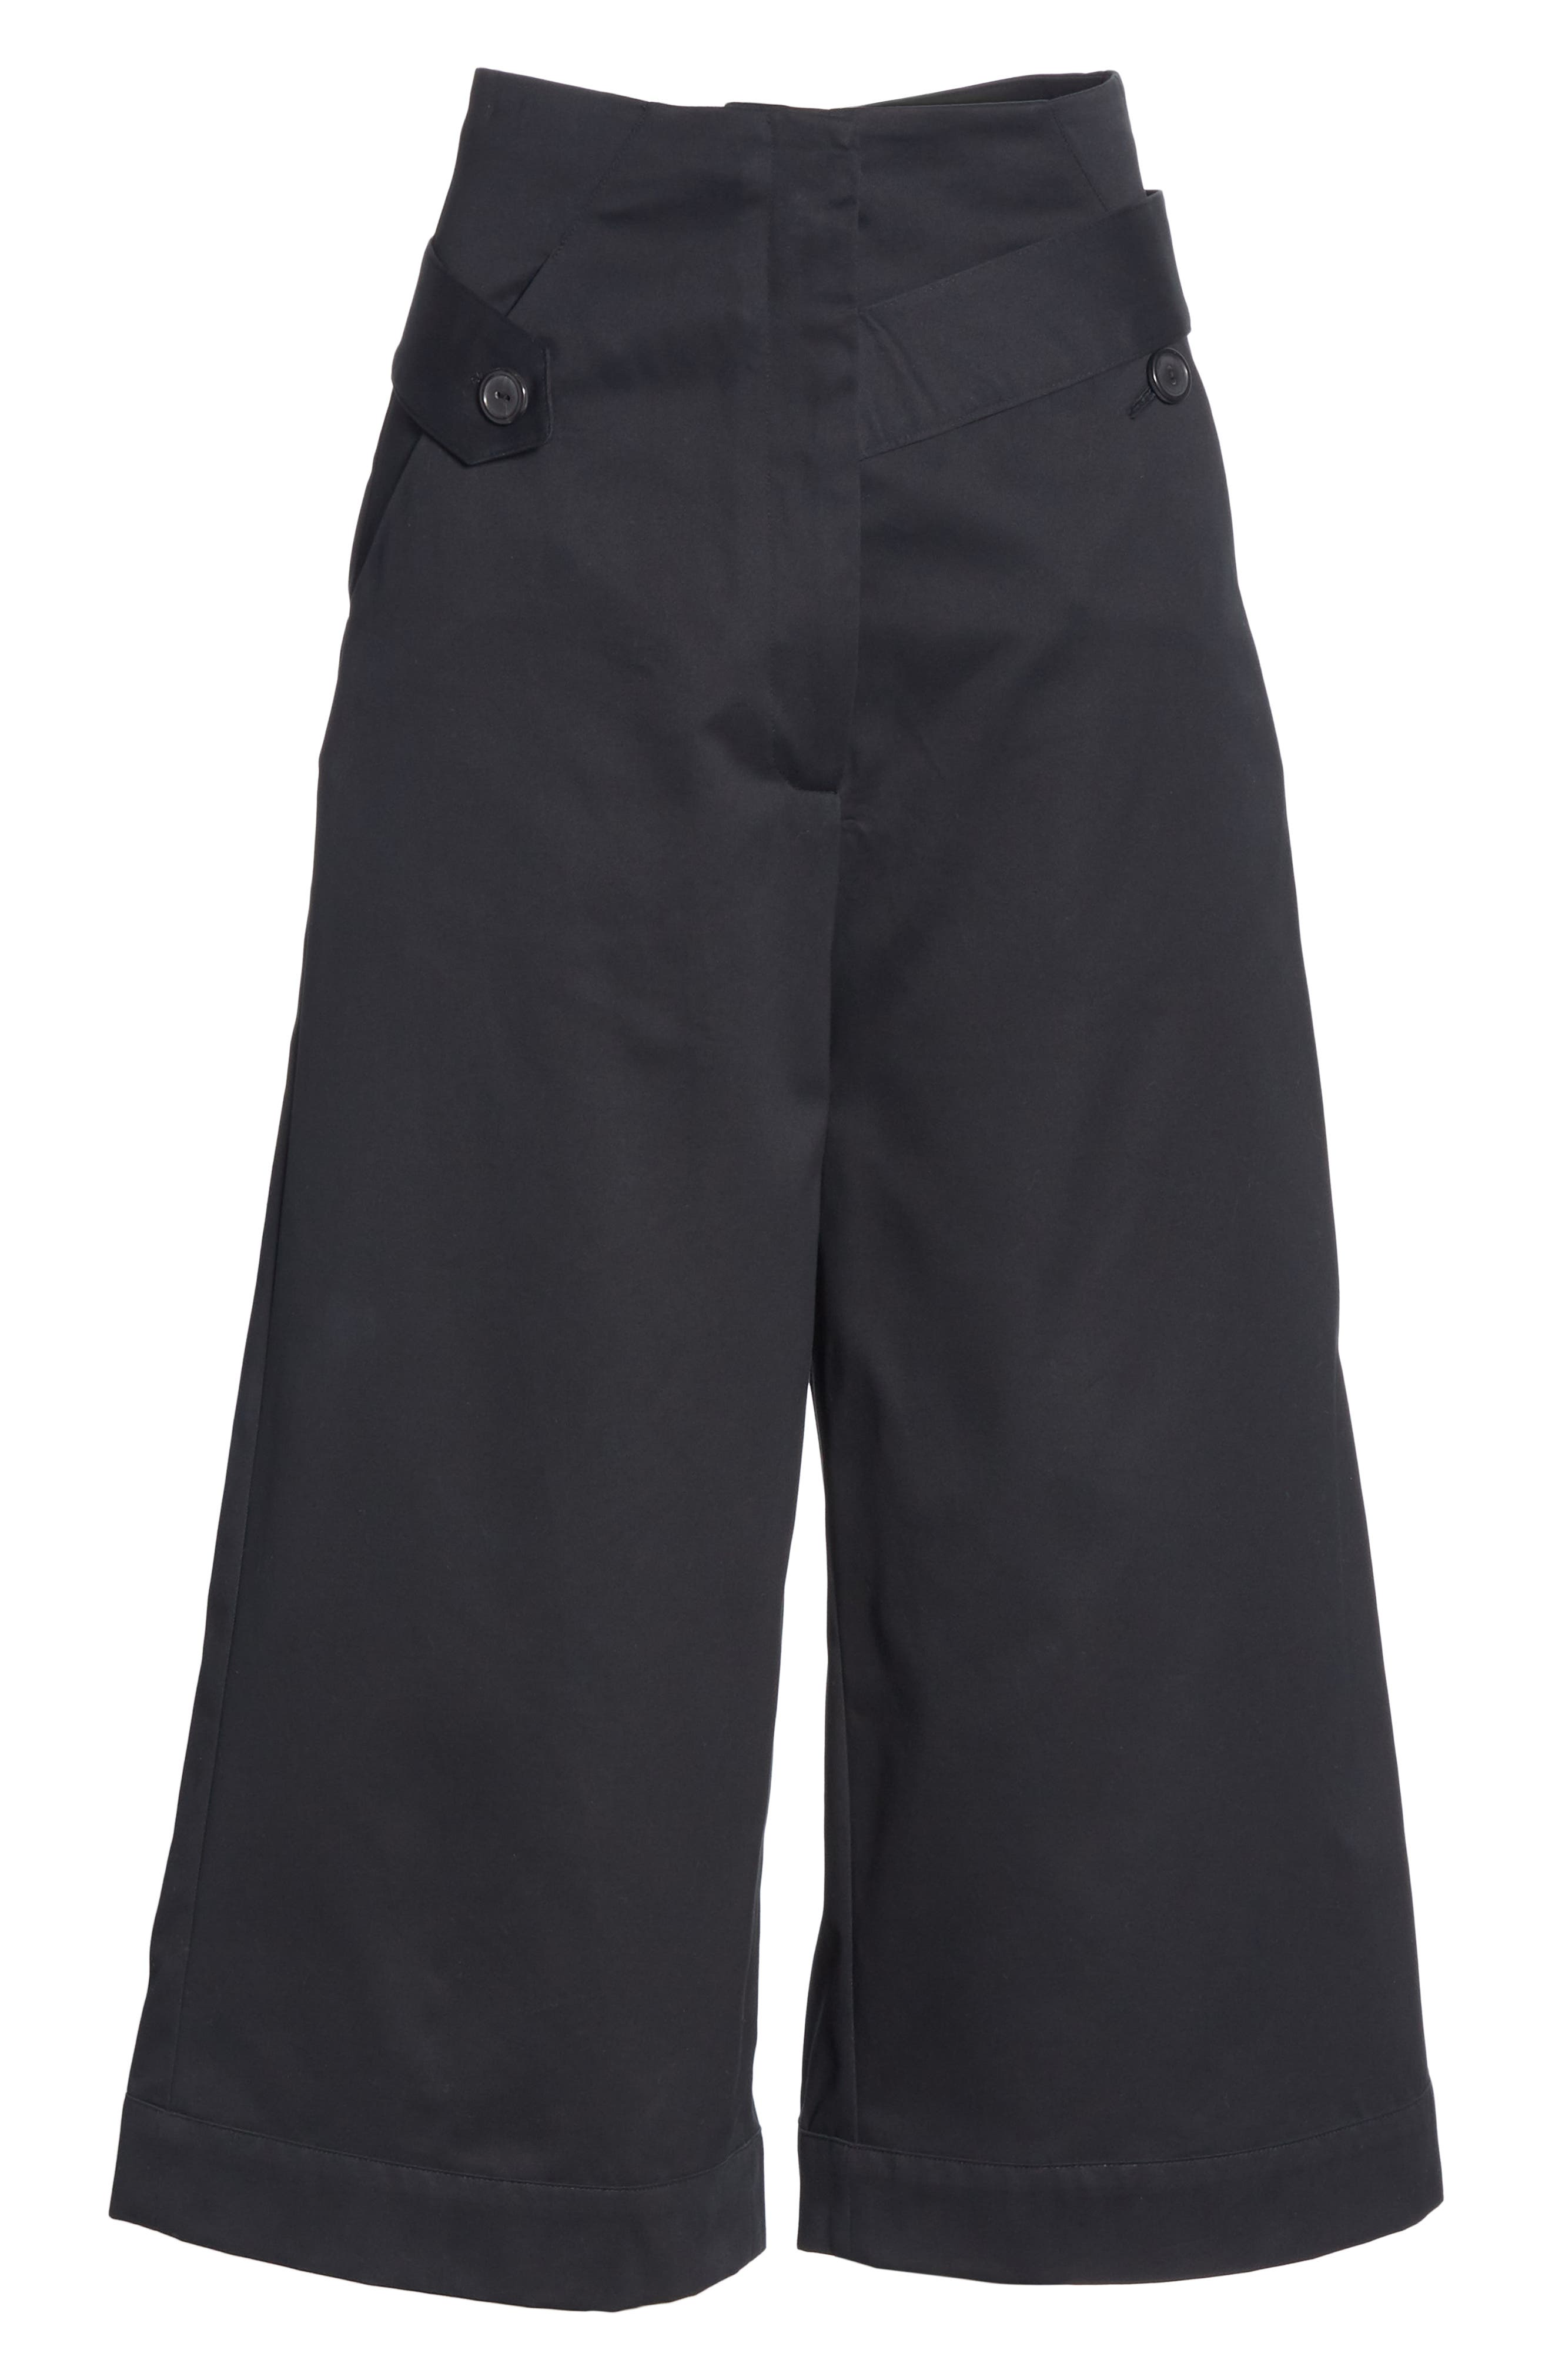 Palmer Harding Distorted Culottes,                             Alternate thumbnail 6, color,                             BLACK COTTON TWILL